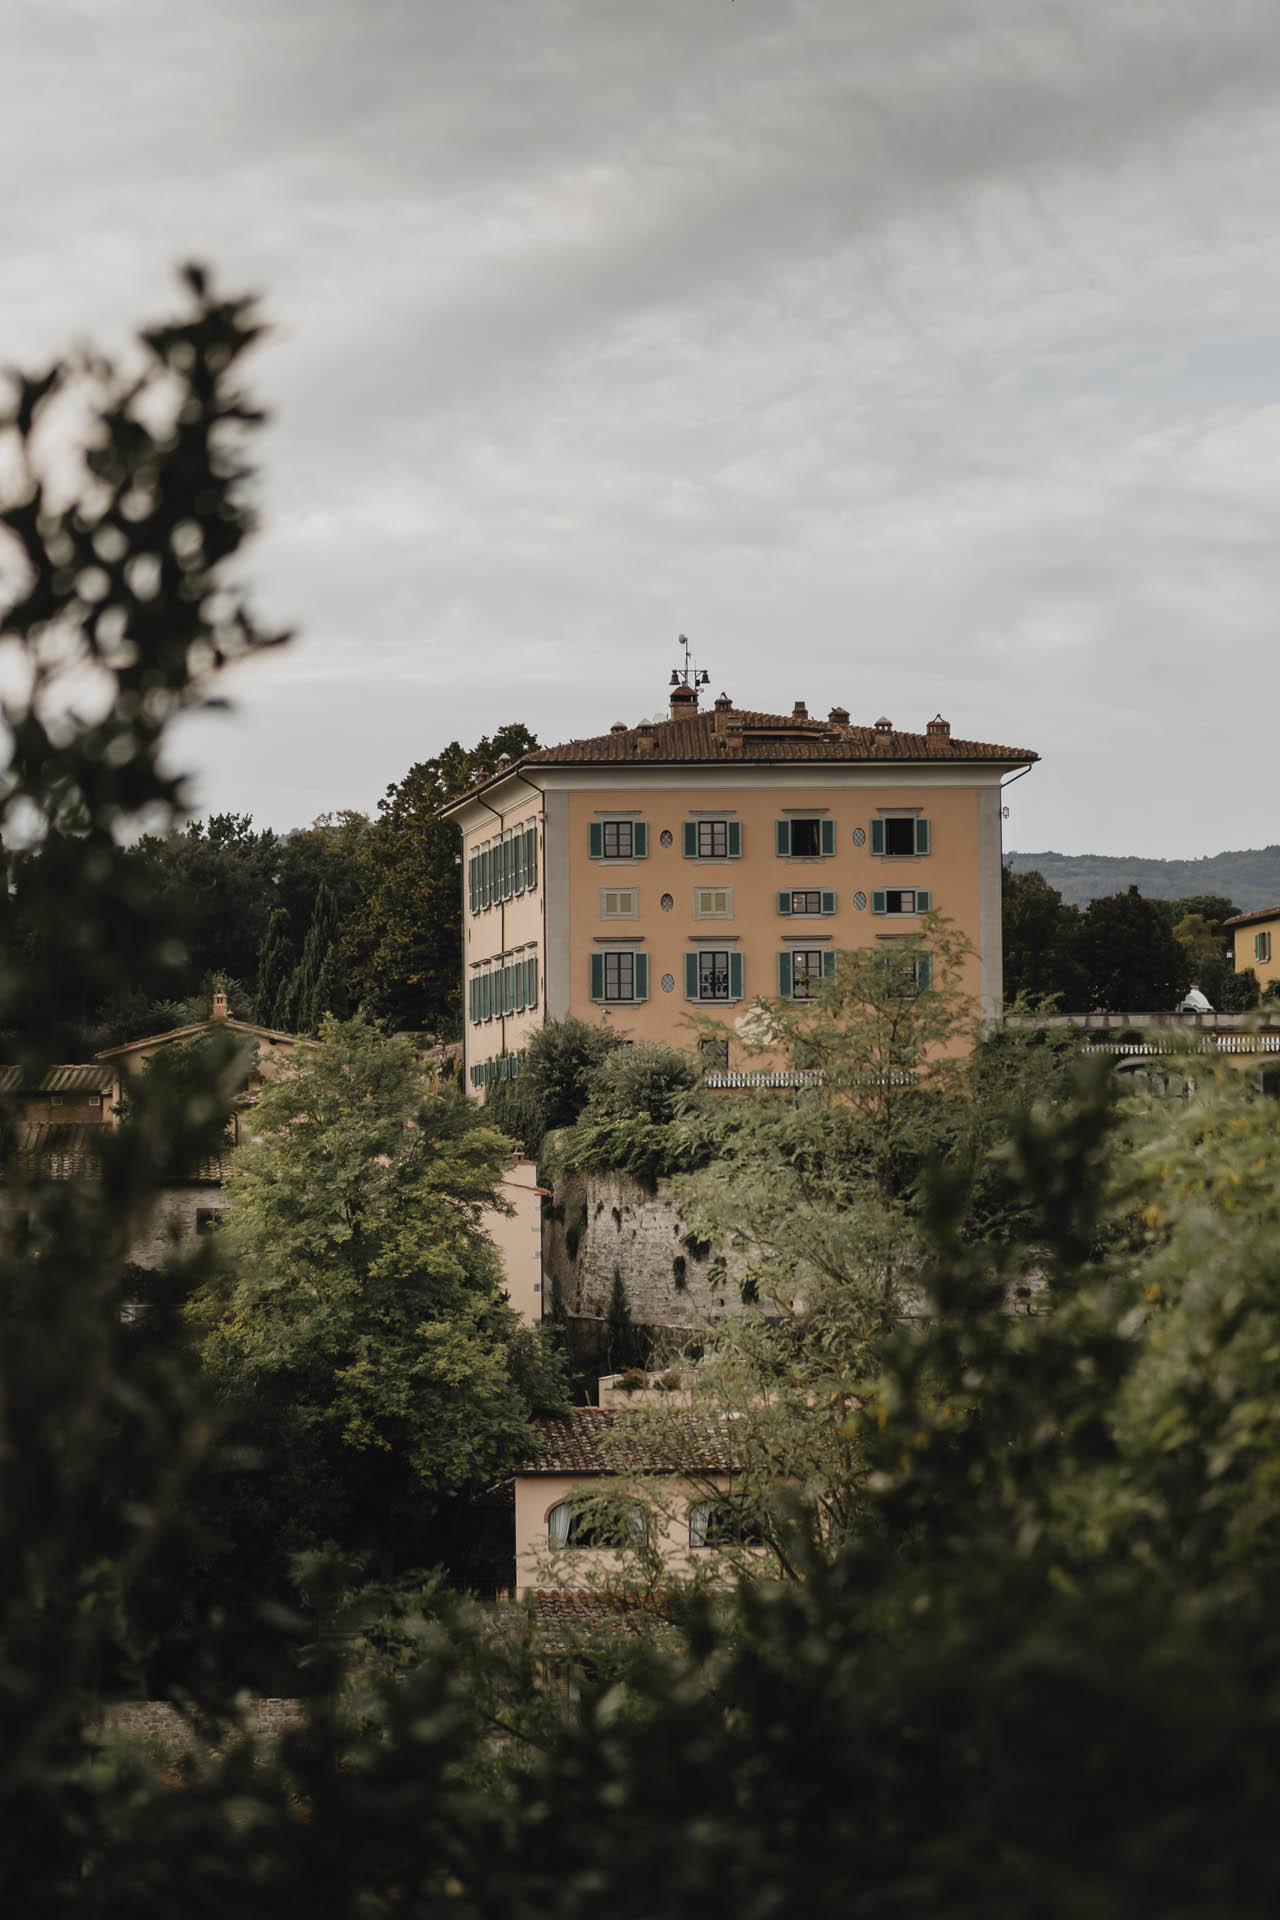 - 2 :: Intimate elegance: an intimate wedding at Il Borro :: Luxury wedding photography - 1 ::  - 2